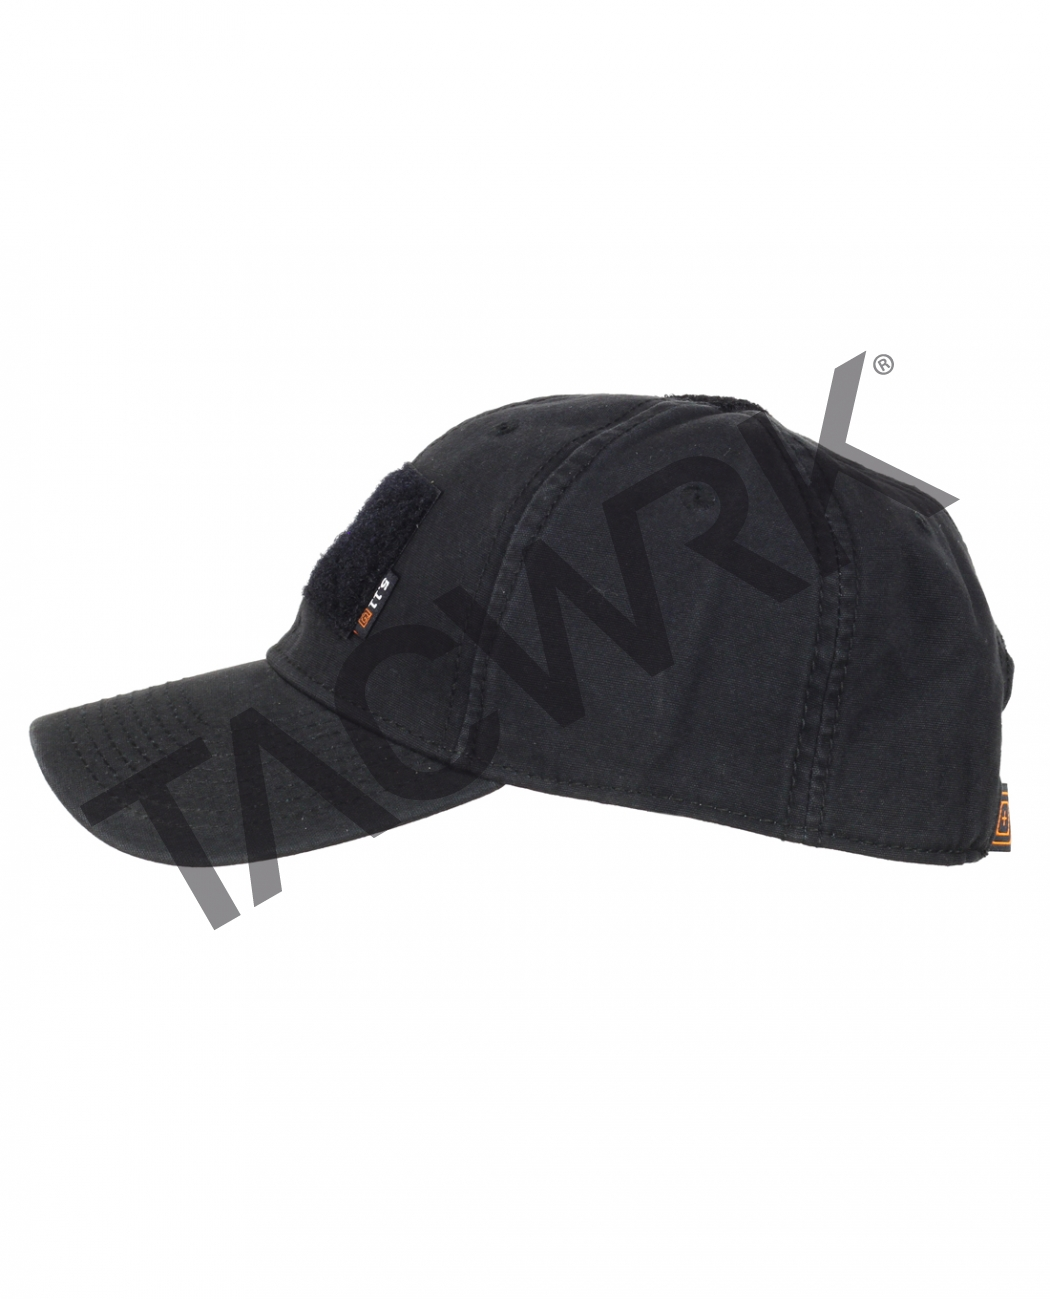 5 11 Tactical Flag Bearer Cap Black Tacwrk